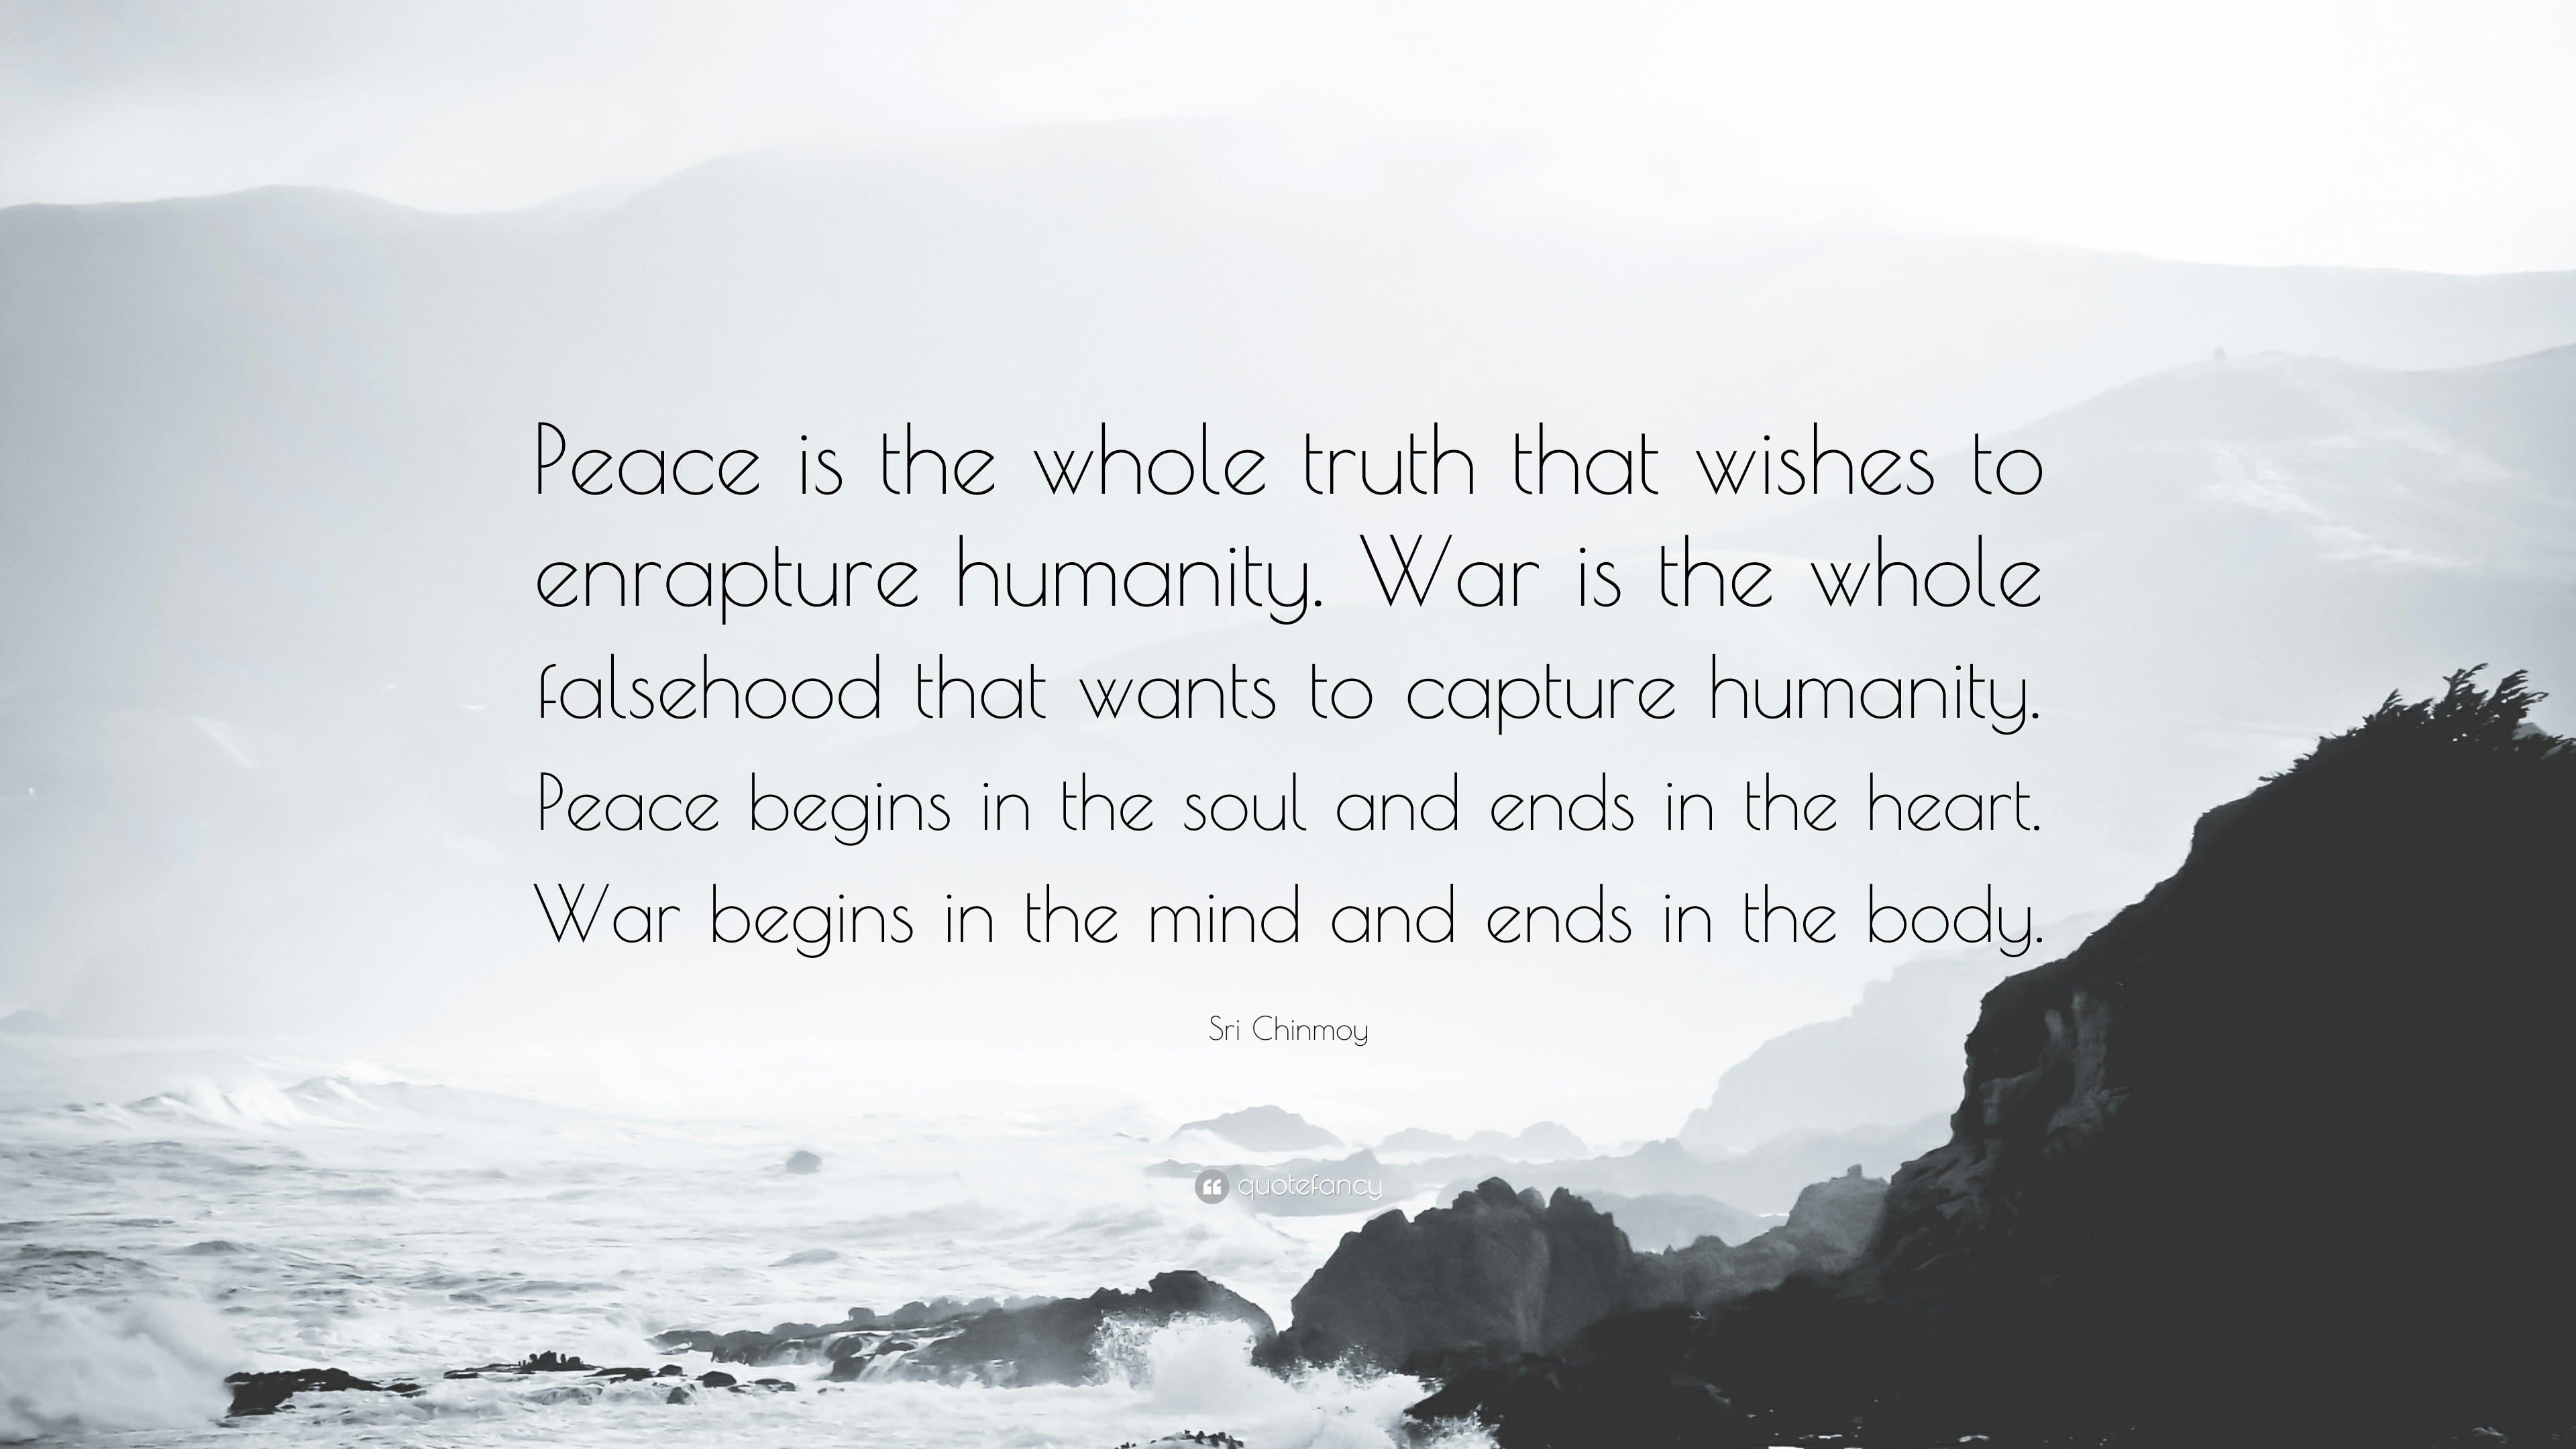 sri chinmoy quote peace is the whole truth that wishes to